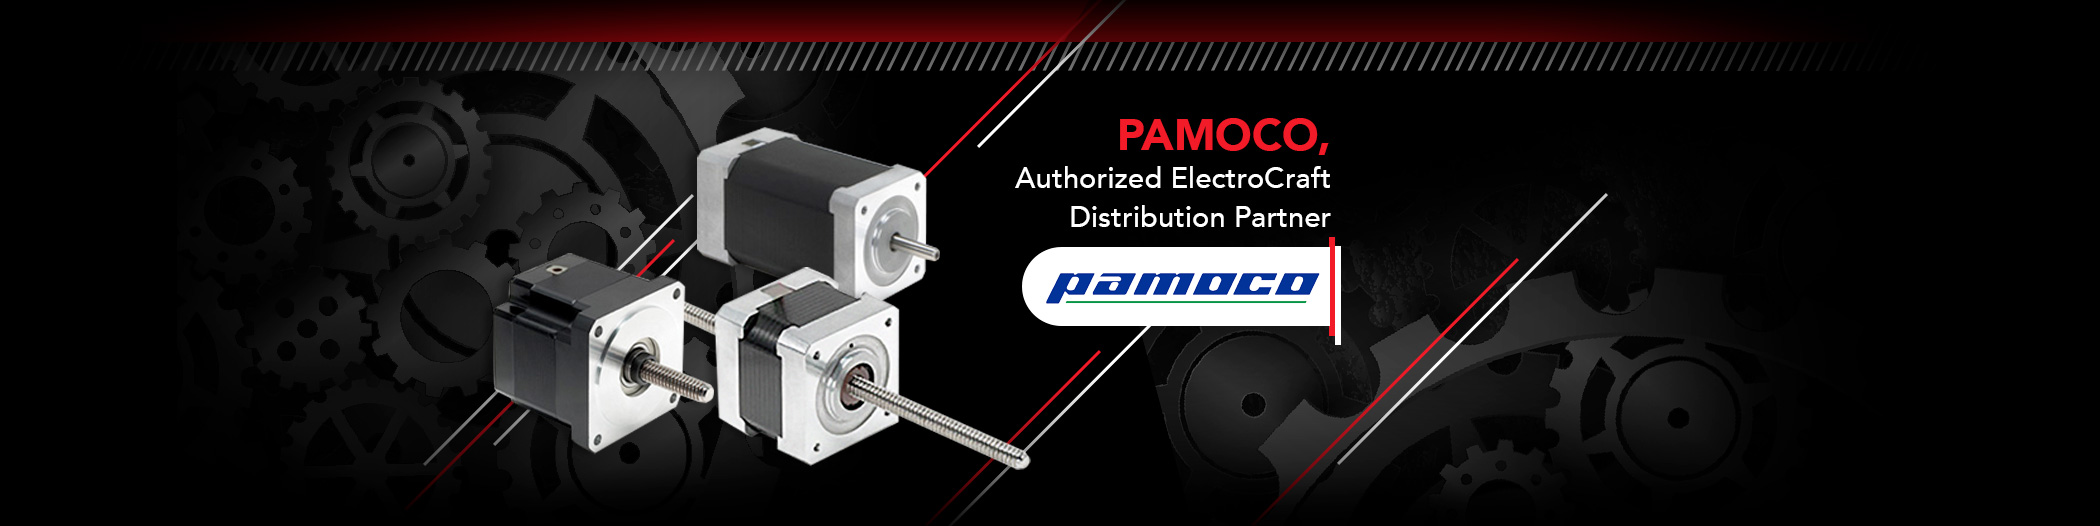 Authorized ElectroCraft Distribution Partner: Pamoco